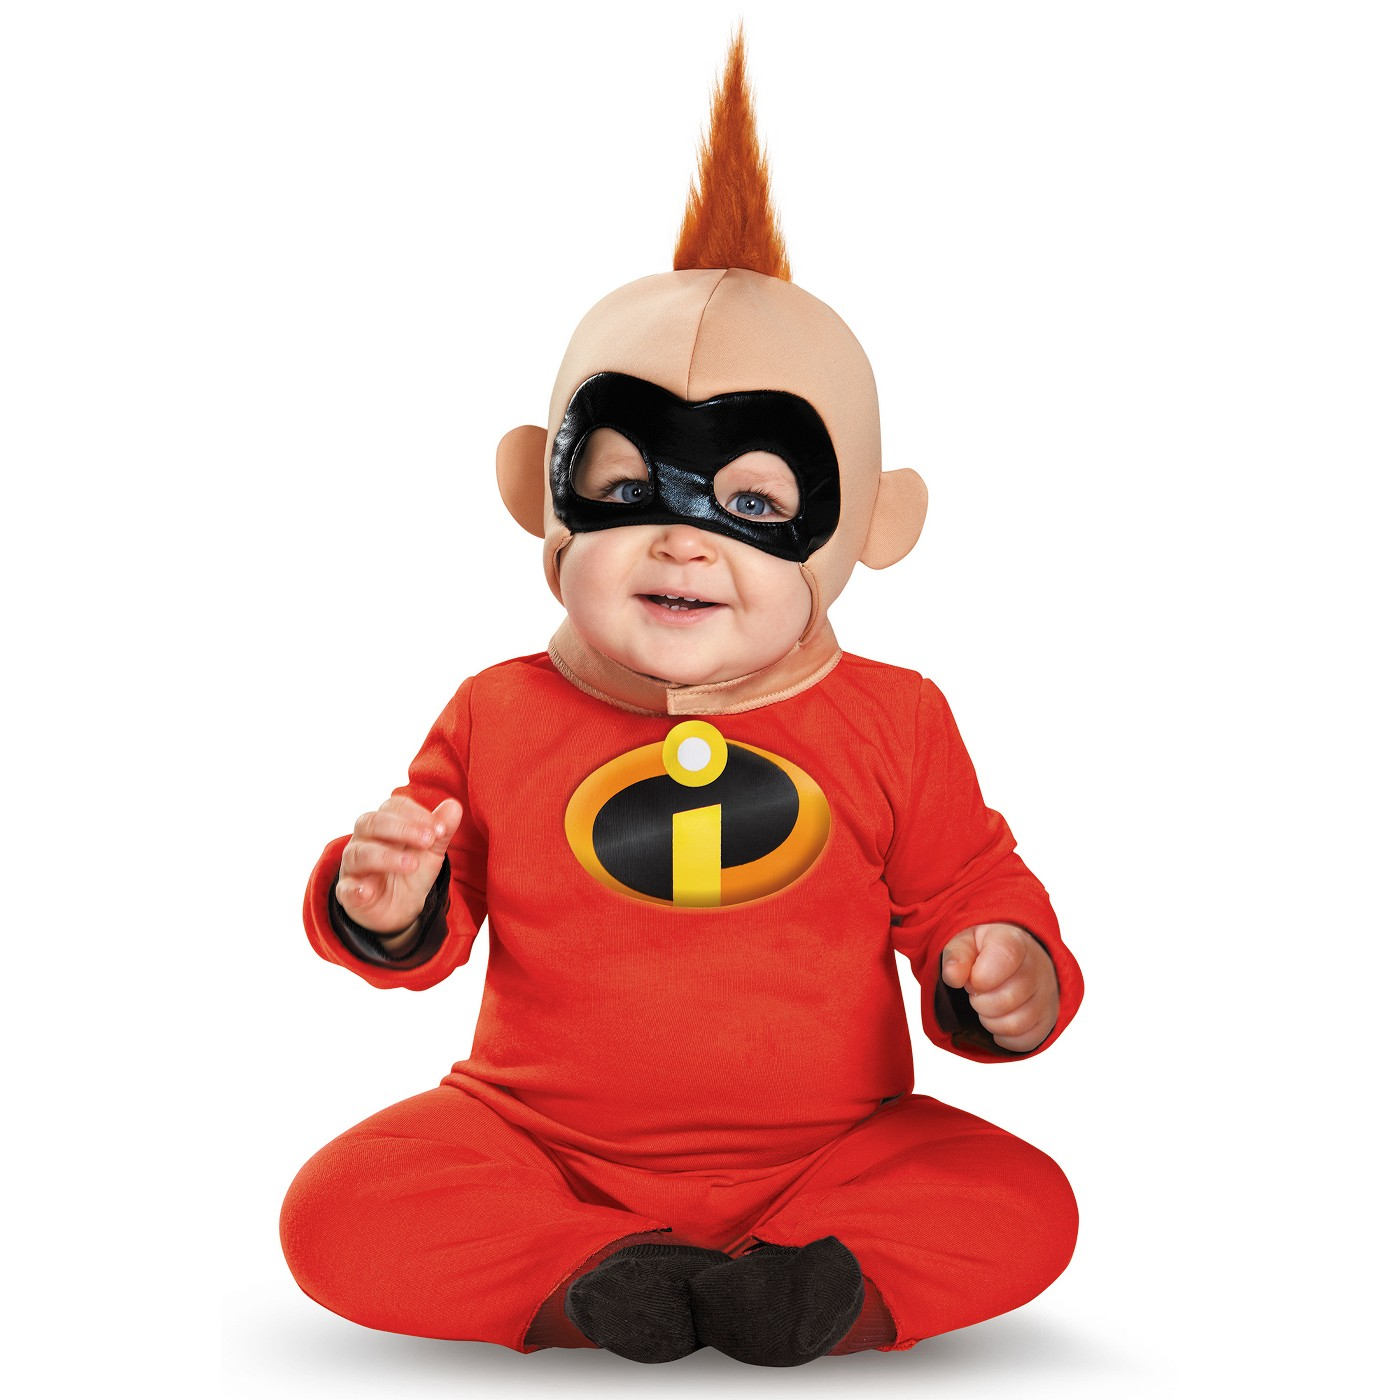 Baby Jack Incredibles Costume